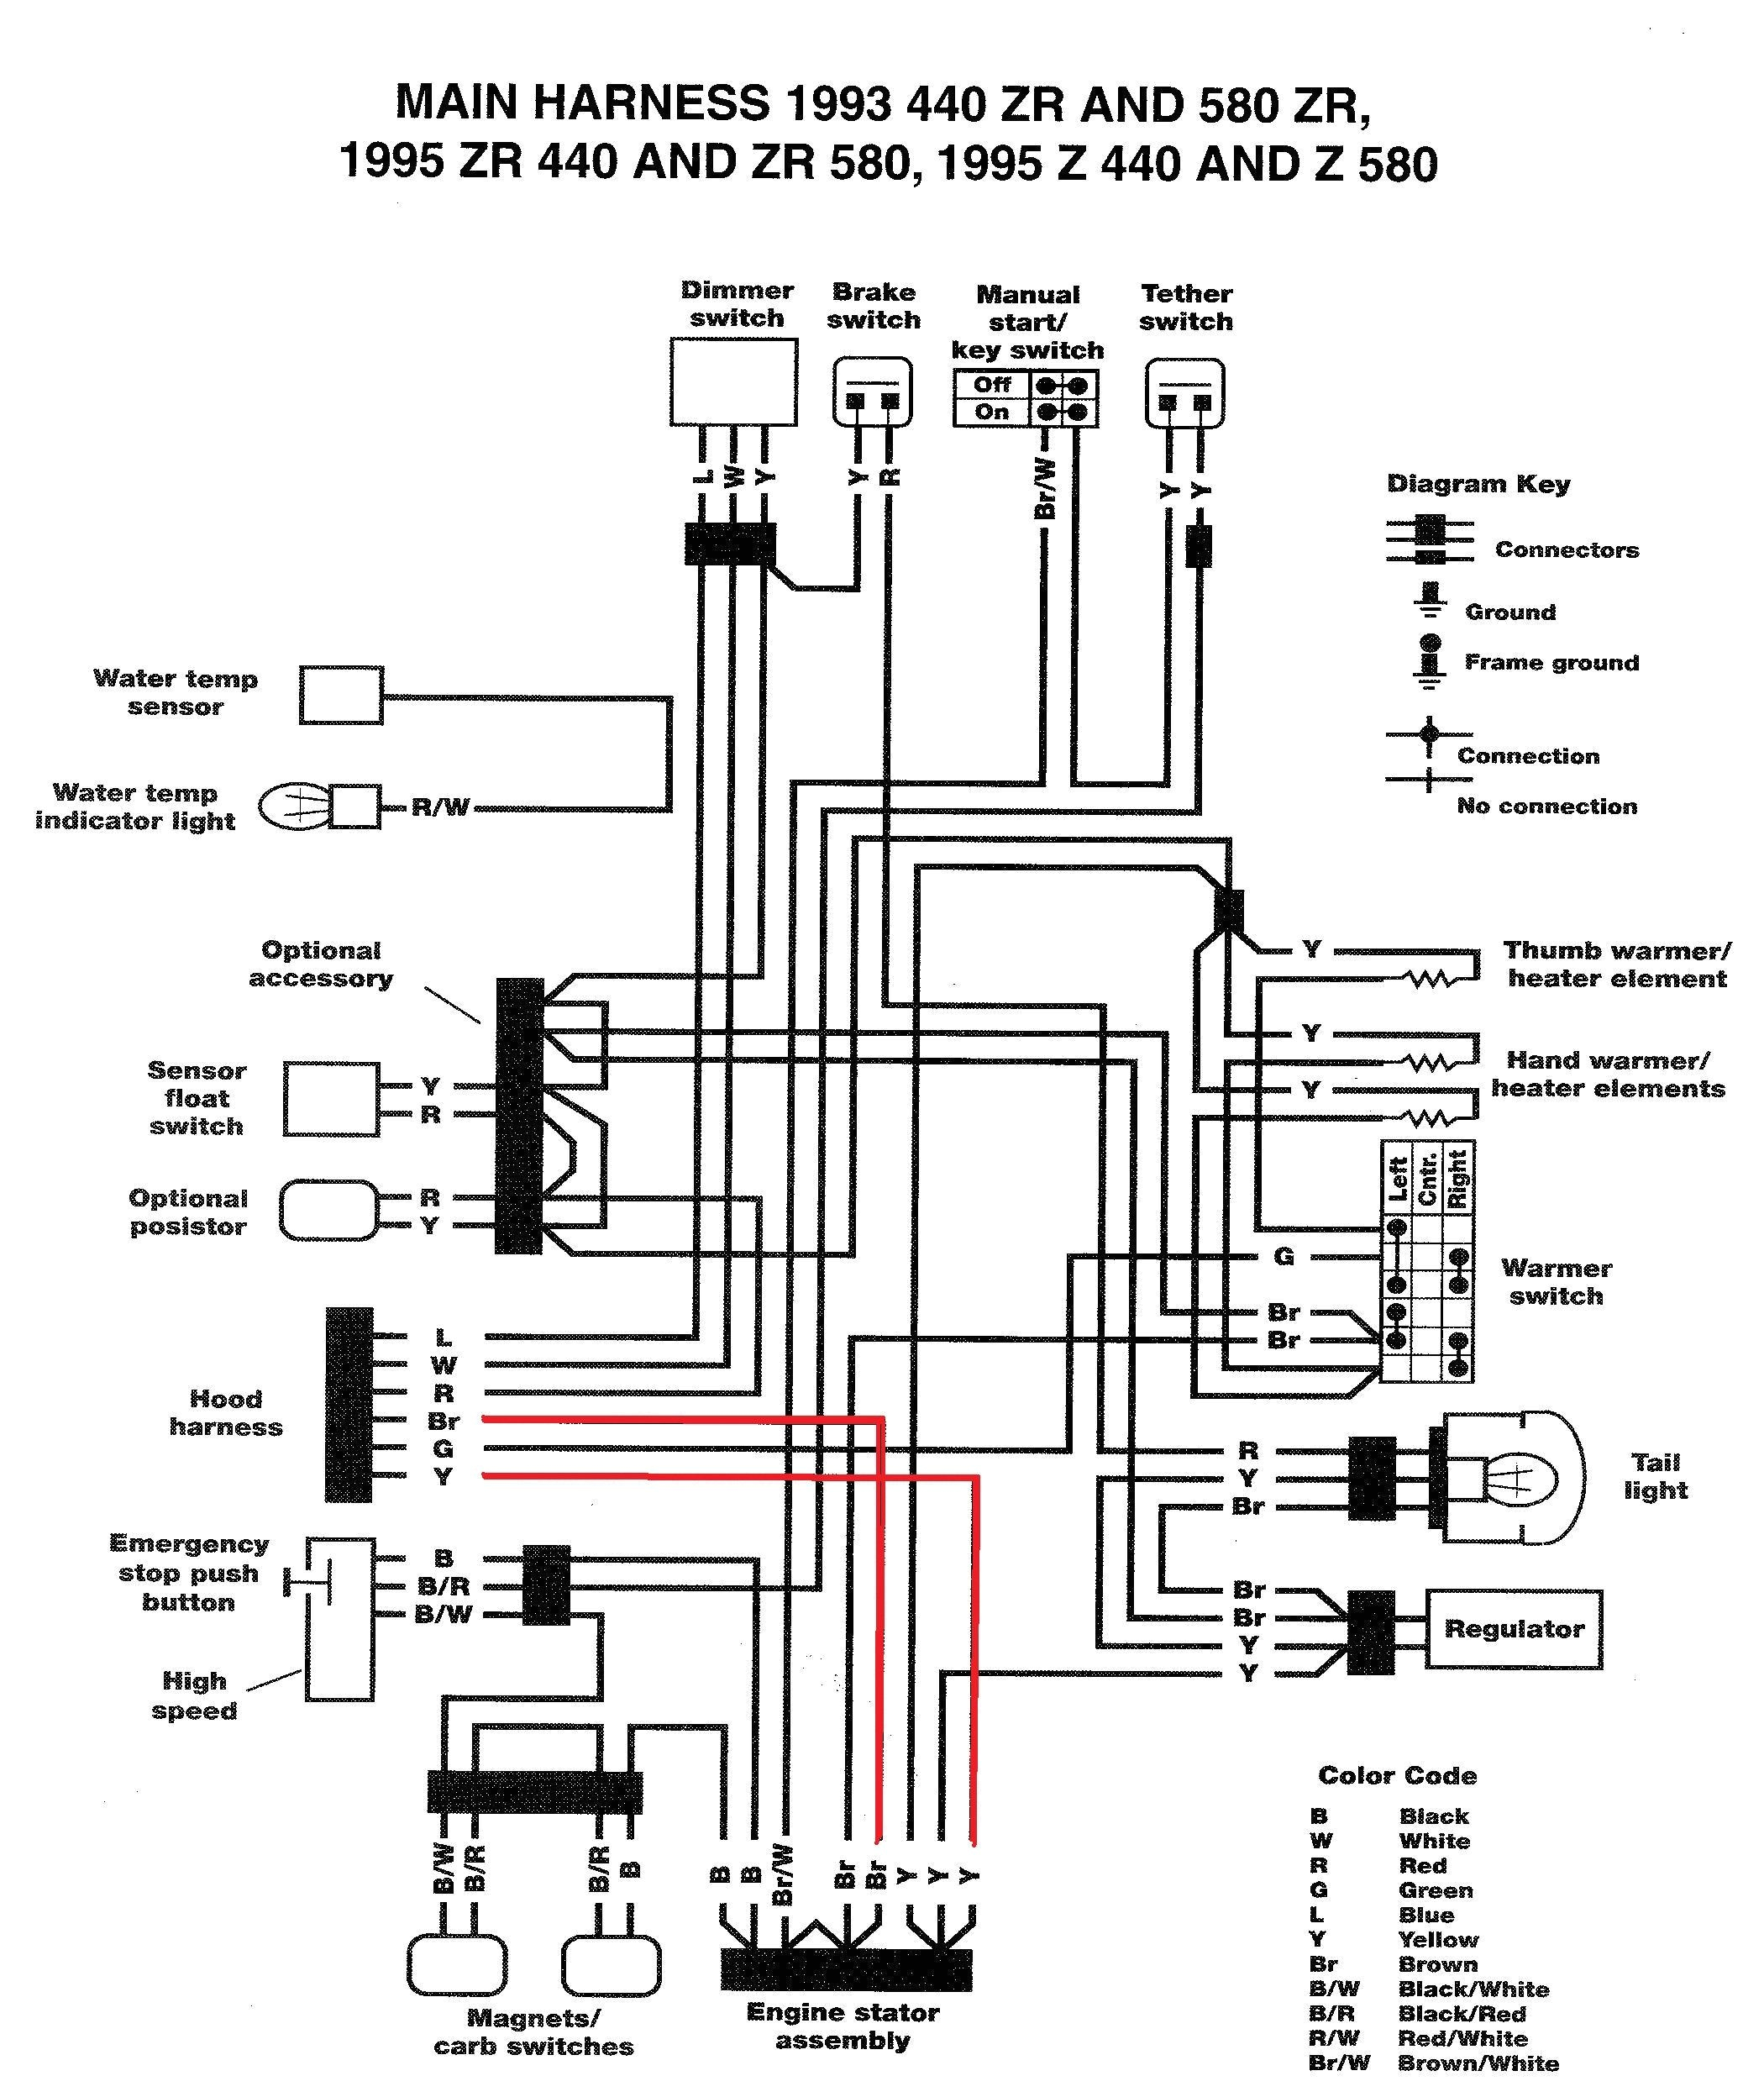 wiring diagram likewise on yamaha wolverine atv winch solenoid mix grizzly 300 wiring diagram wiring diagram